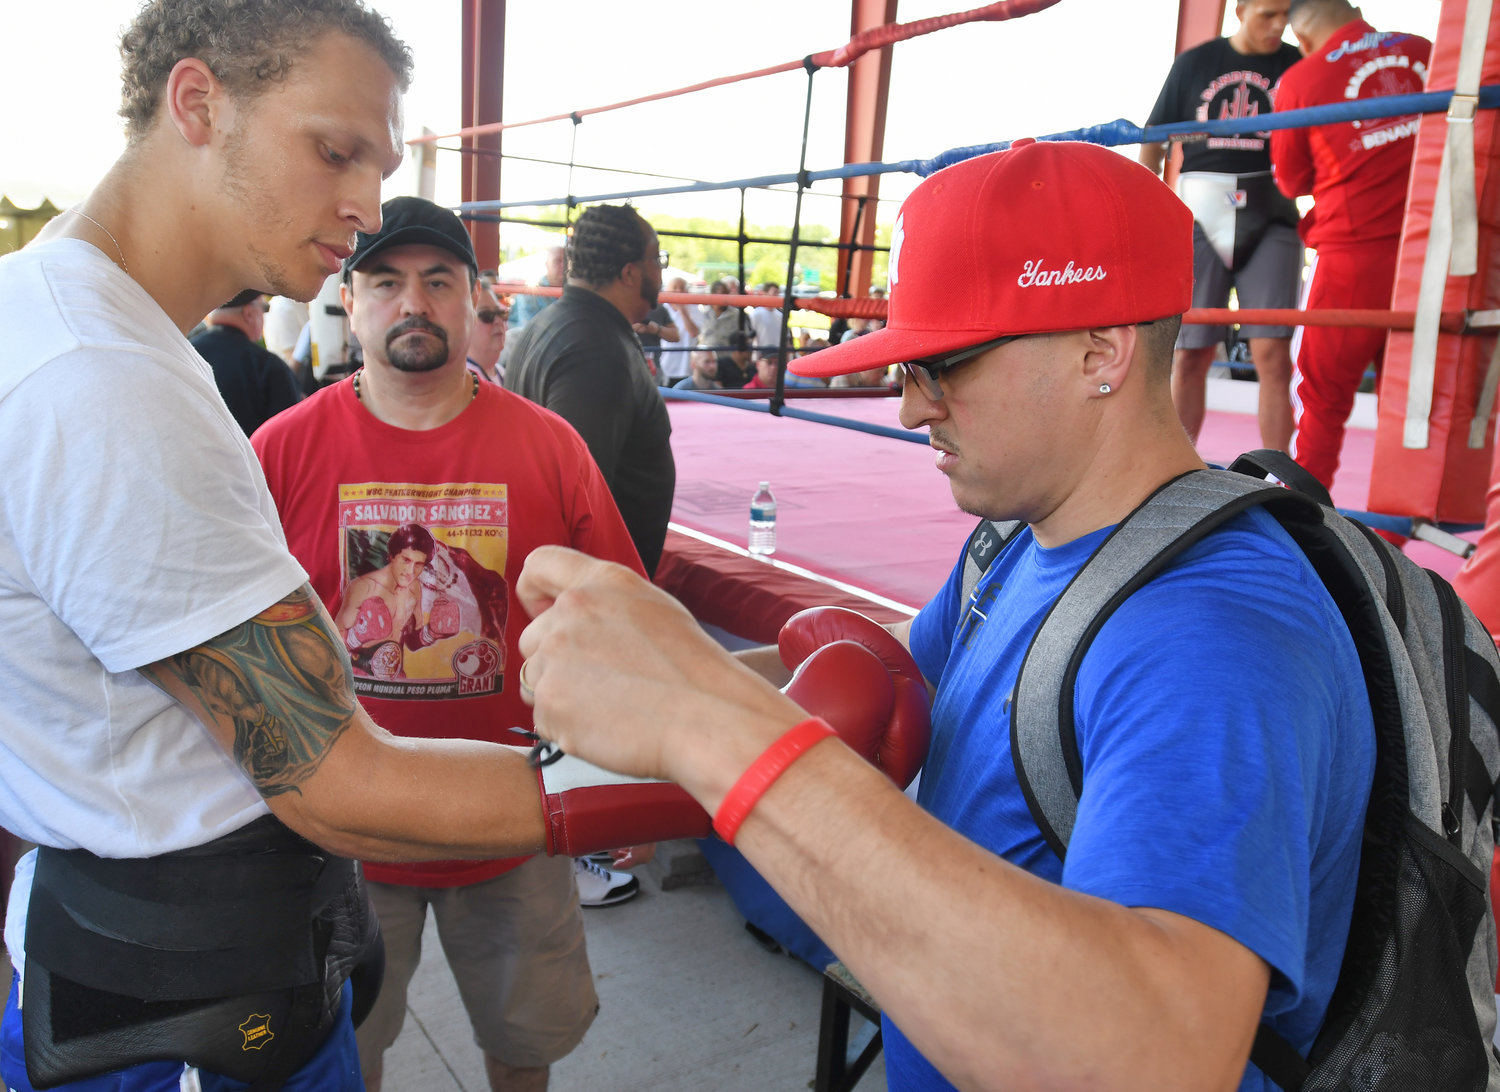 "LACING UP THE GLOVES — Utica boxer Micheal Rycraft has his boxing glove laced up by Timothy Nolan from the Rochester Fight Factory on Friday afternoon at the International Boxing Hall of Fame in Canastota. Rycraft was on hand to spar with former World Boxing Council super middleweight champion and top-ranked contender David ""El Bandera Roja"" Benavidez."